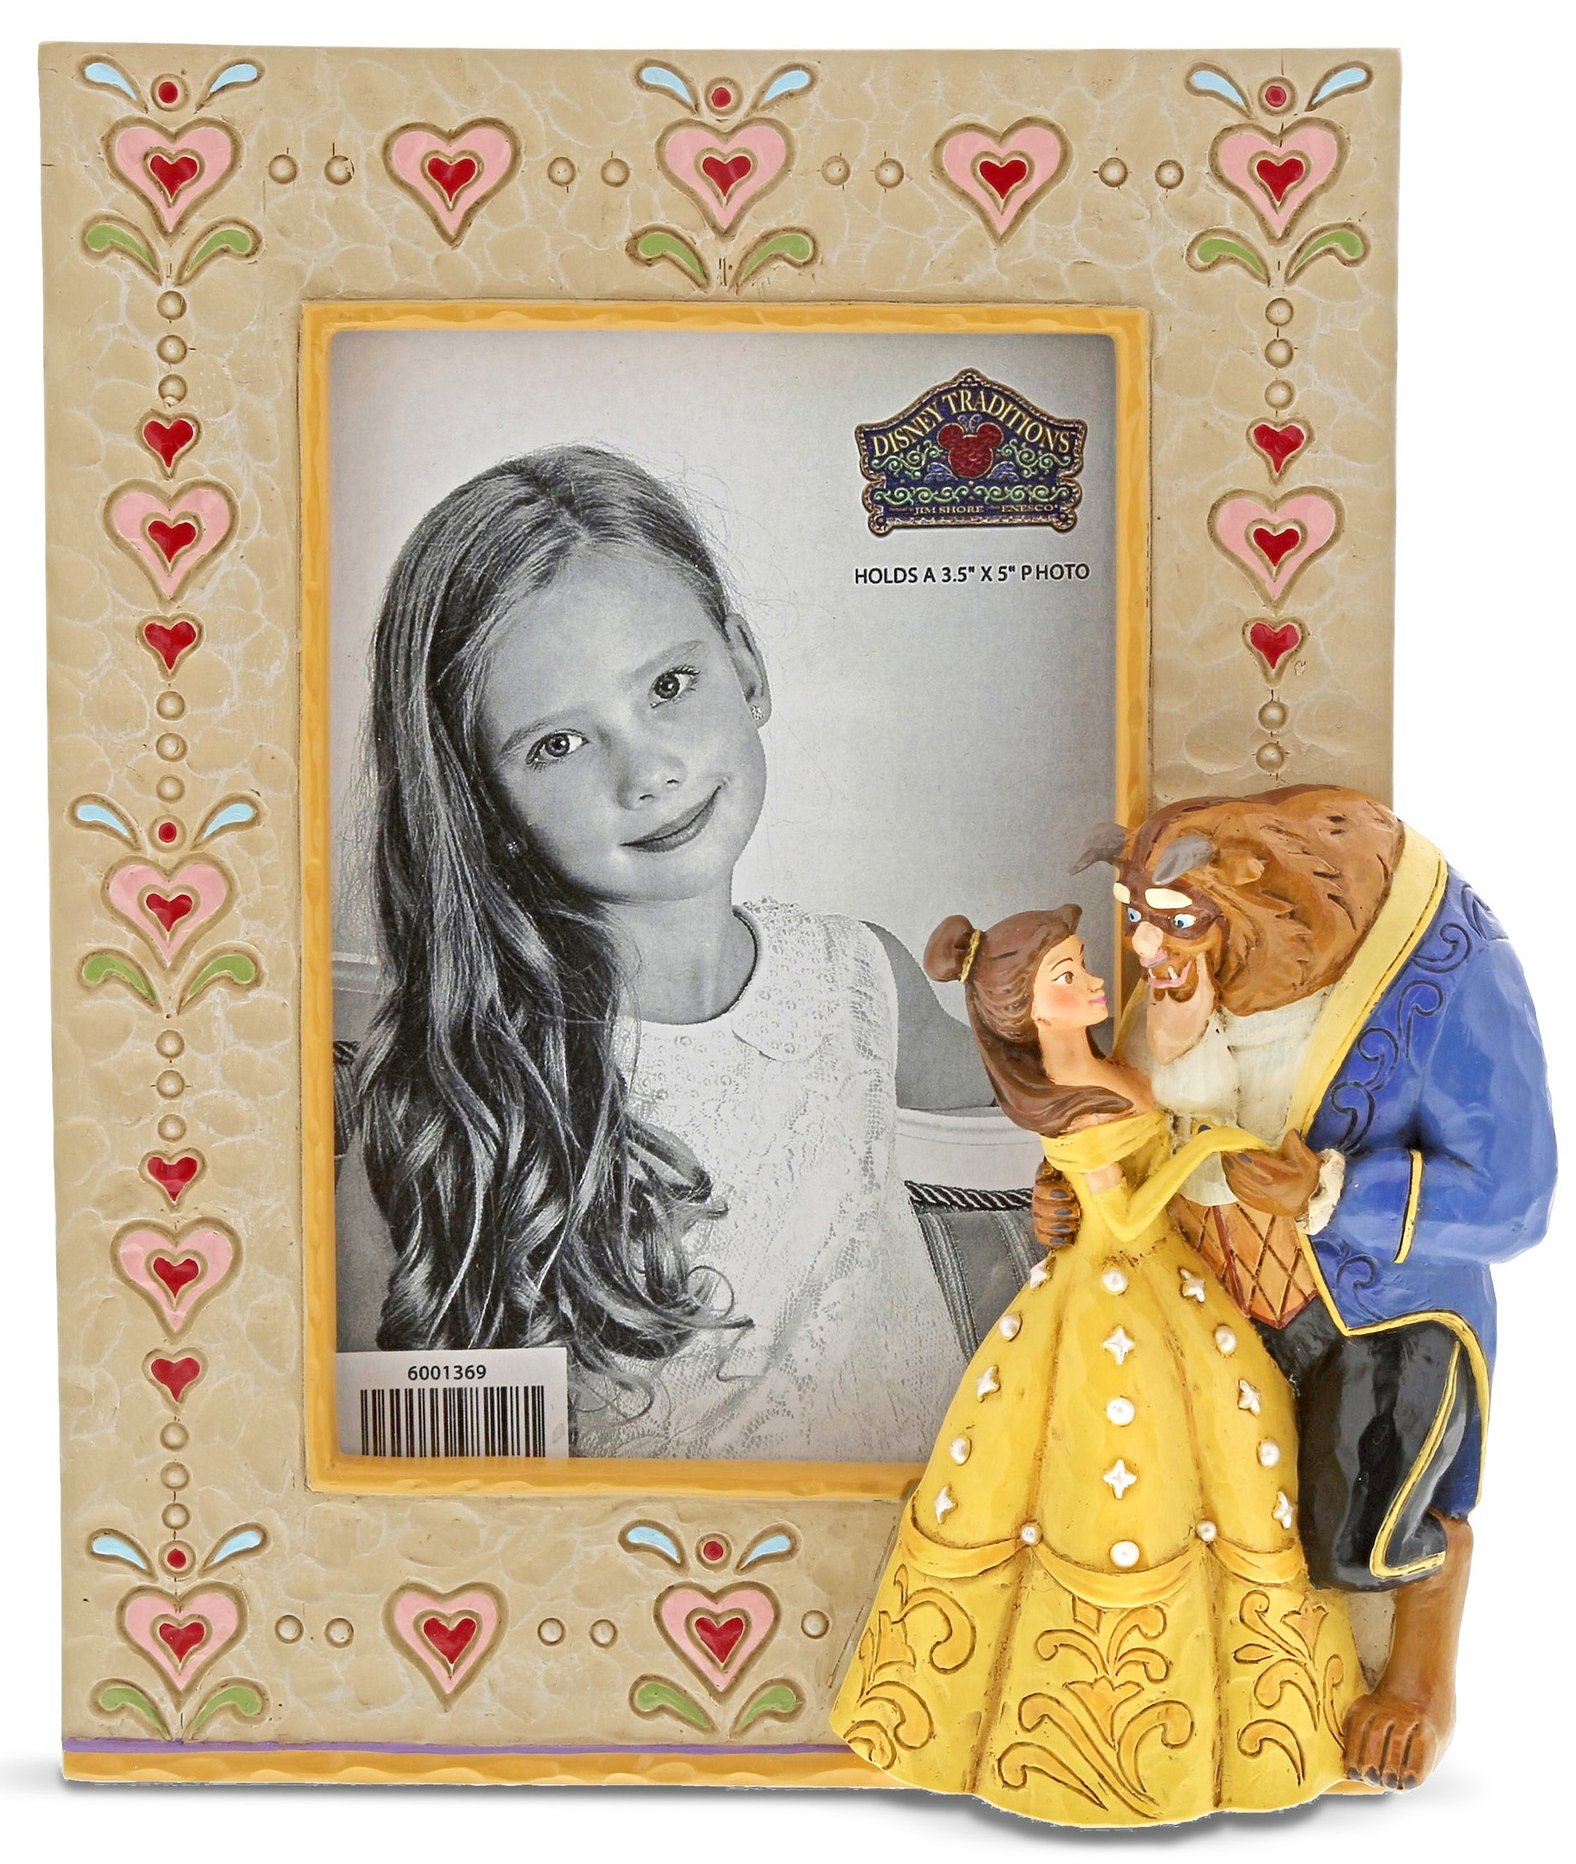 Disney Traditions by Jim Shore 6001369N Beauty and the Beast Photo Frame